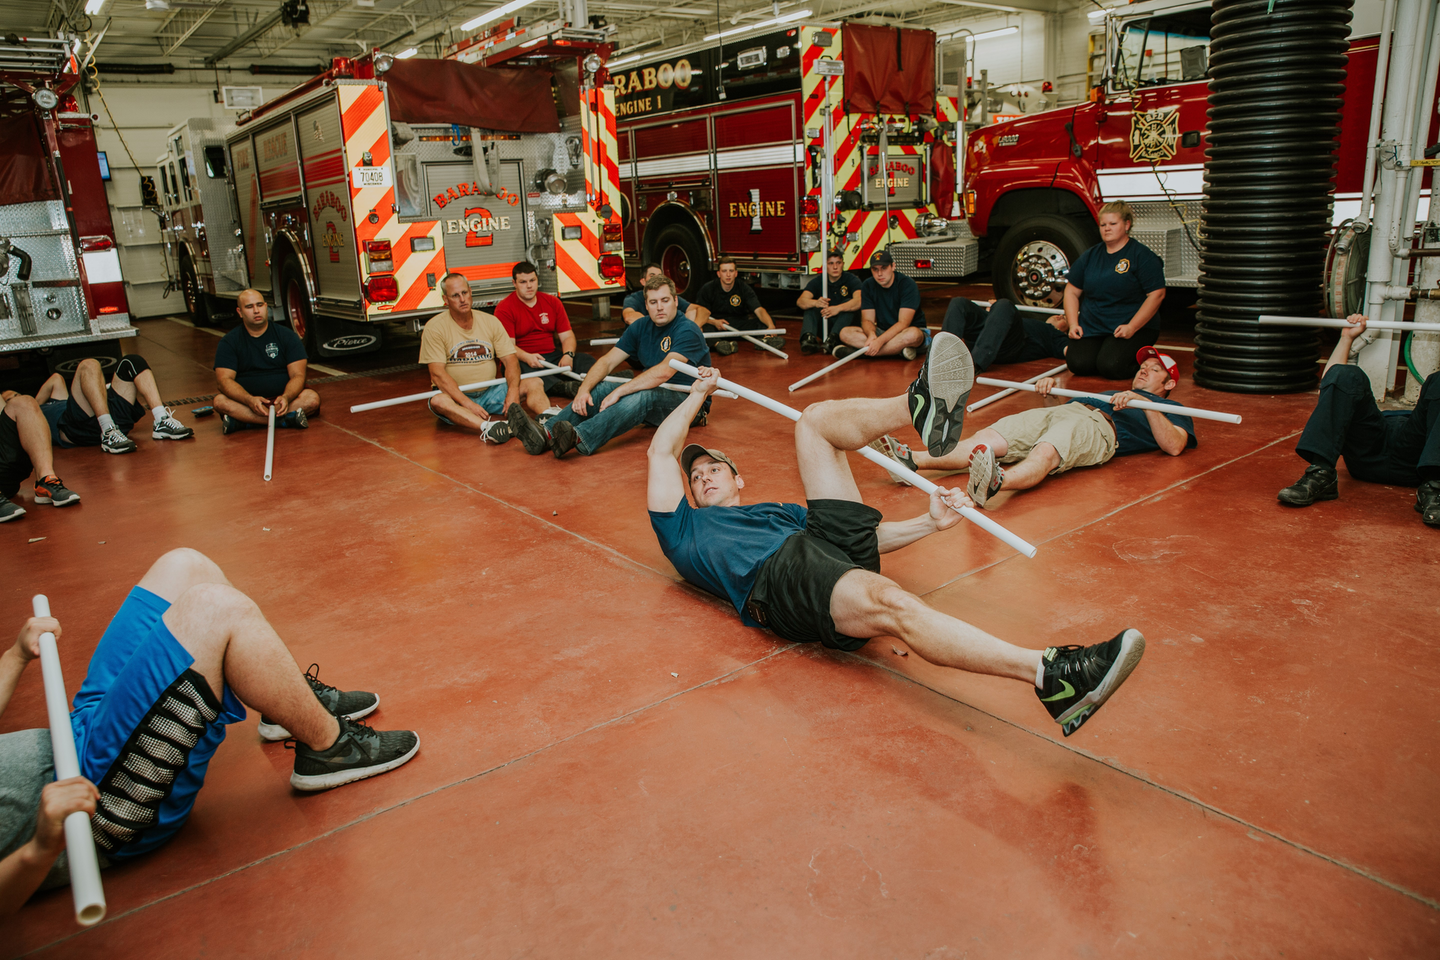 Training plans that are more classroom-based, such as this one, which was photographed in 2019, can start with a rehab-based training, such as bird dogs, knee hugs on one's back and child's poses. The goal: Lengthen the muscles, release tension, reduce inflammation.